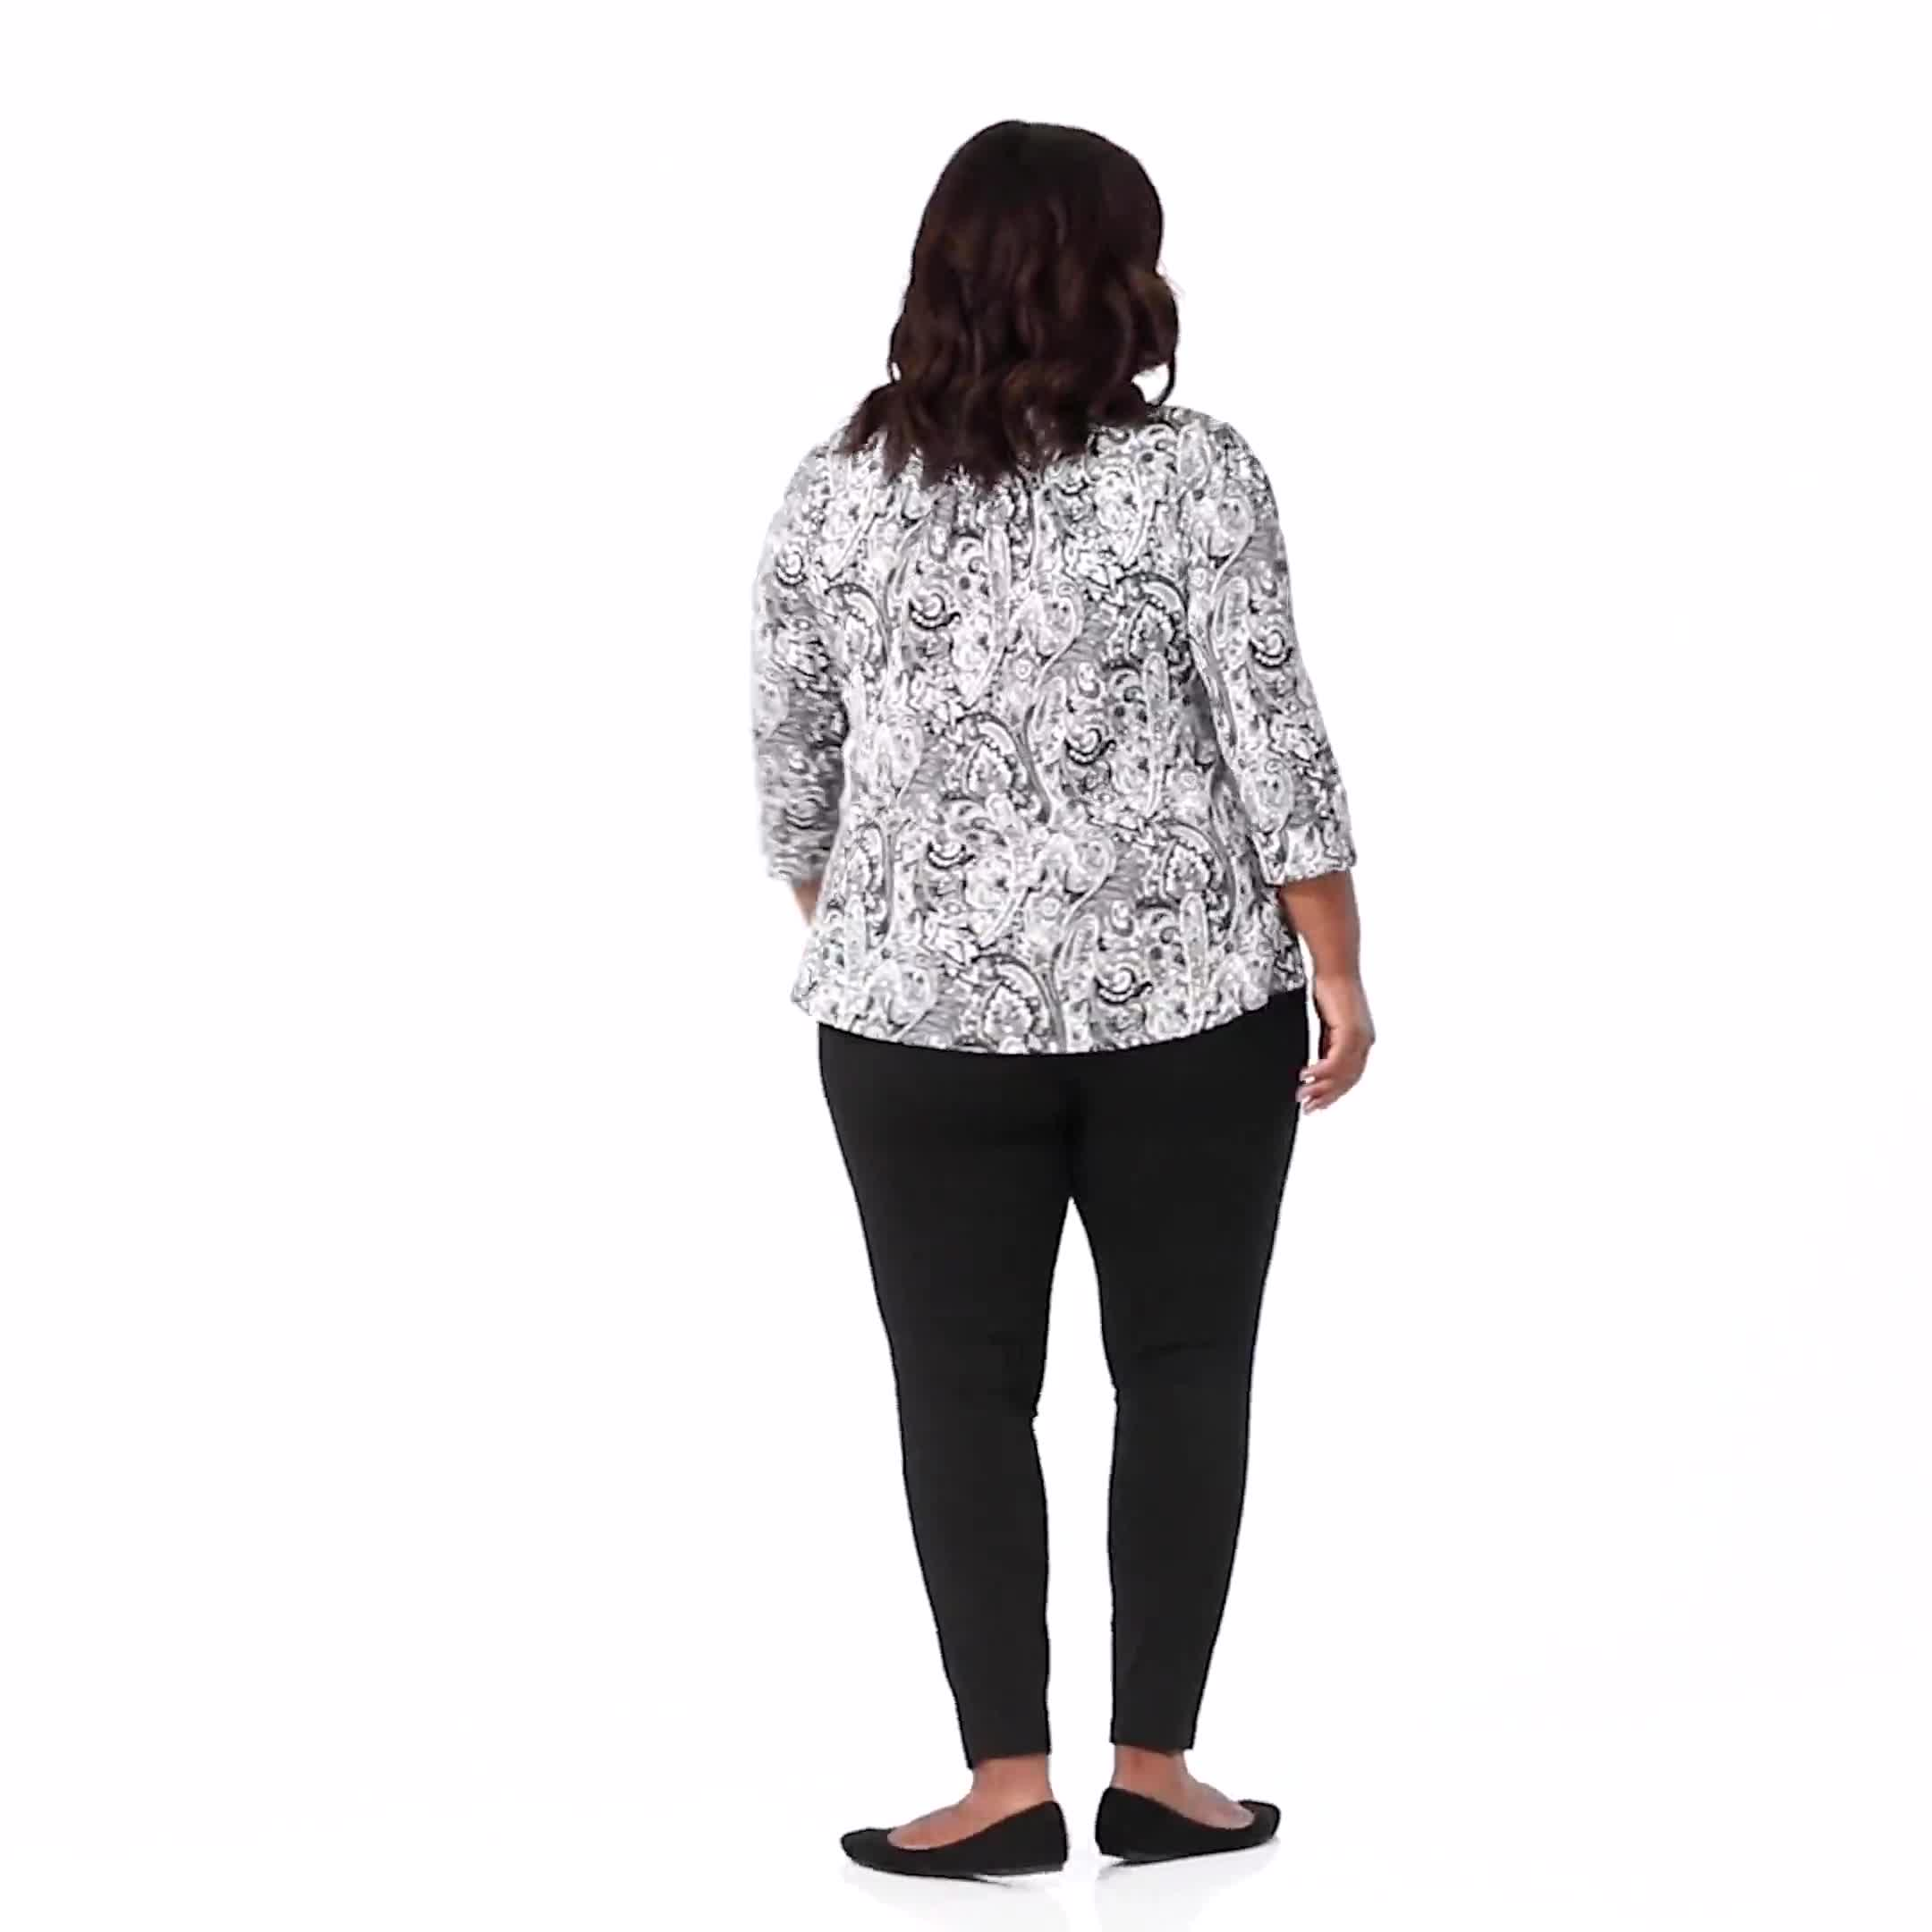 Ponte Pull on Legging with Seam Detail - Plus - Video